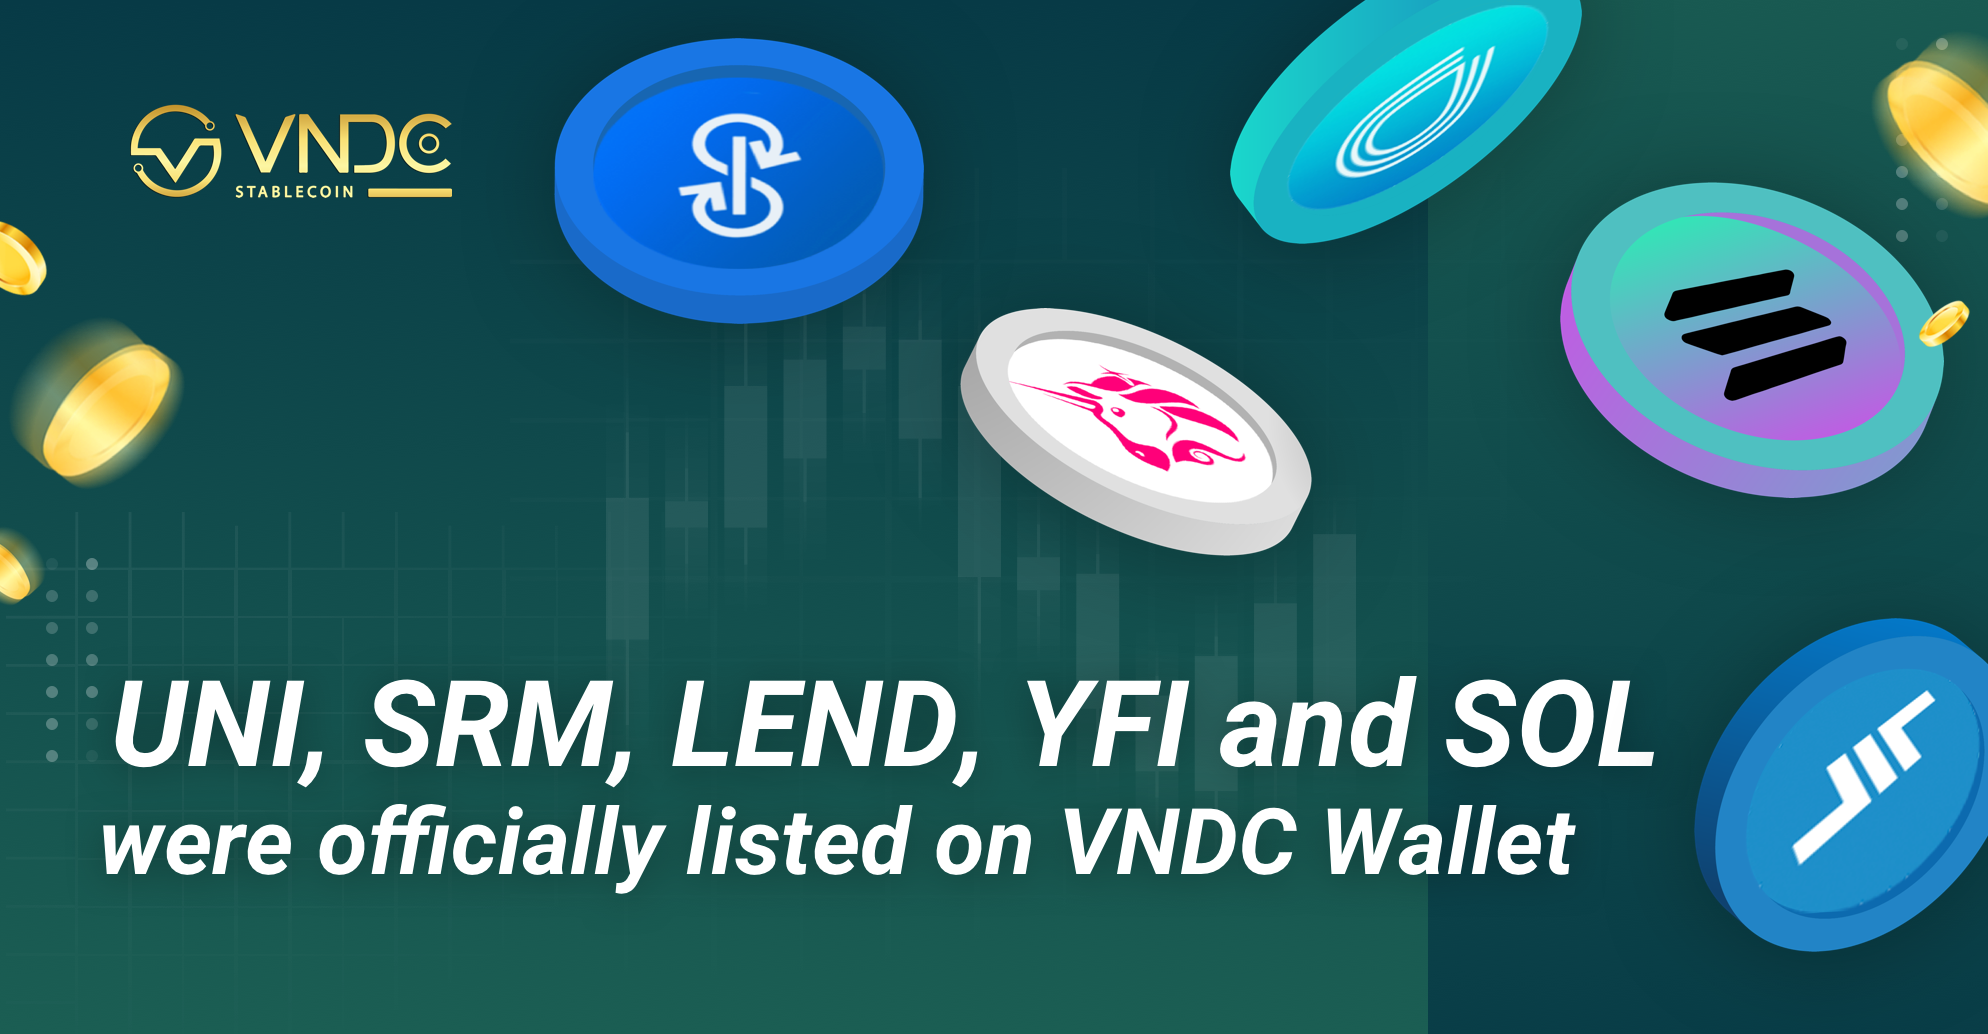 UNI, SRM, LEND, YFI, and SOL were officially listed on VNDC Wallet!